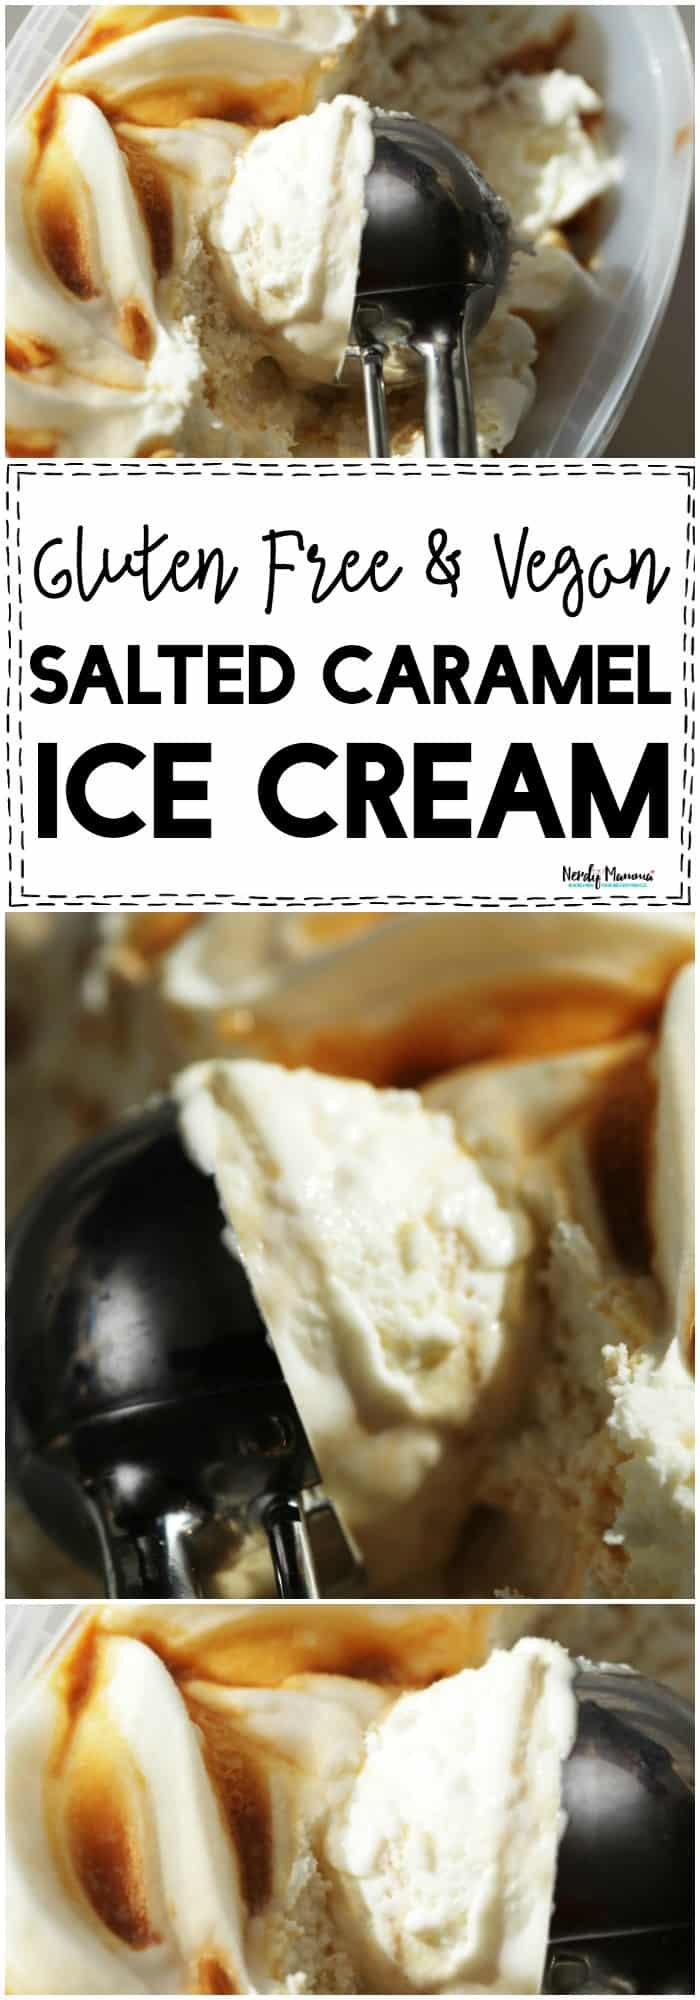 This recipe for vegan and gluten-free salted caramel ice cream is so EASY! I love it!